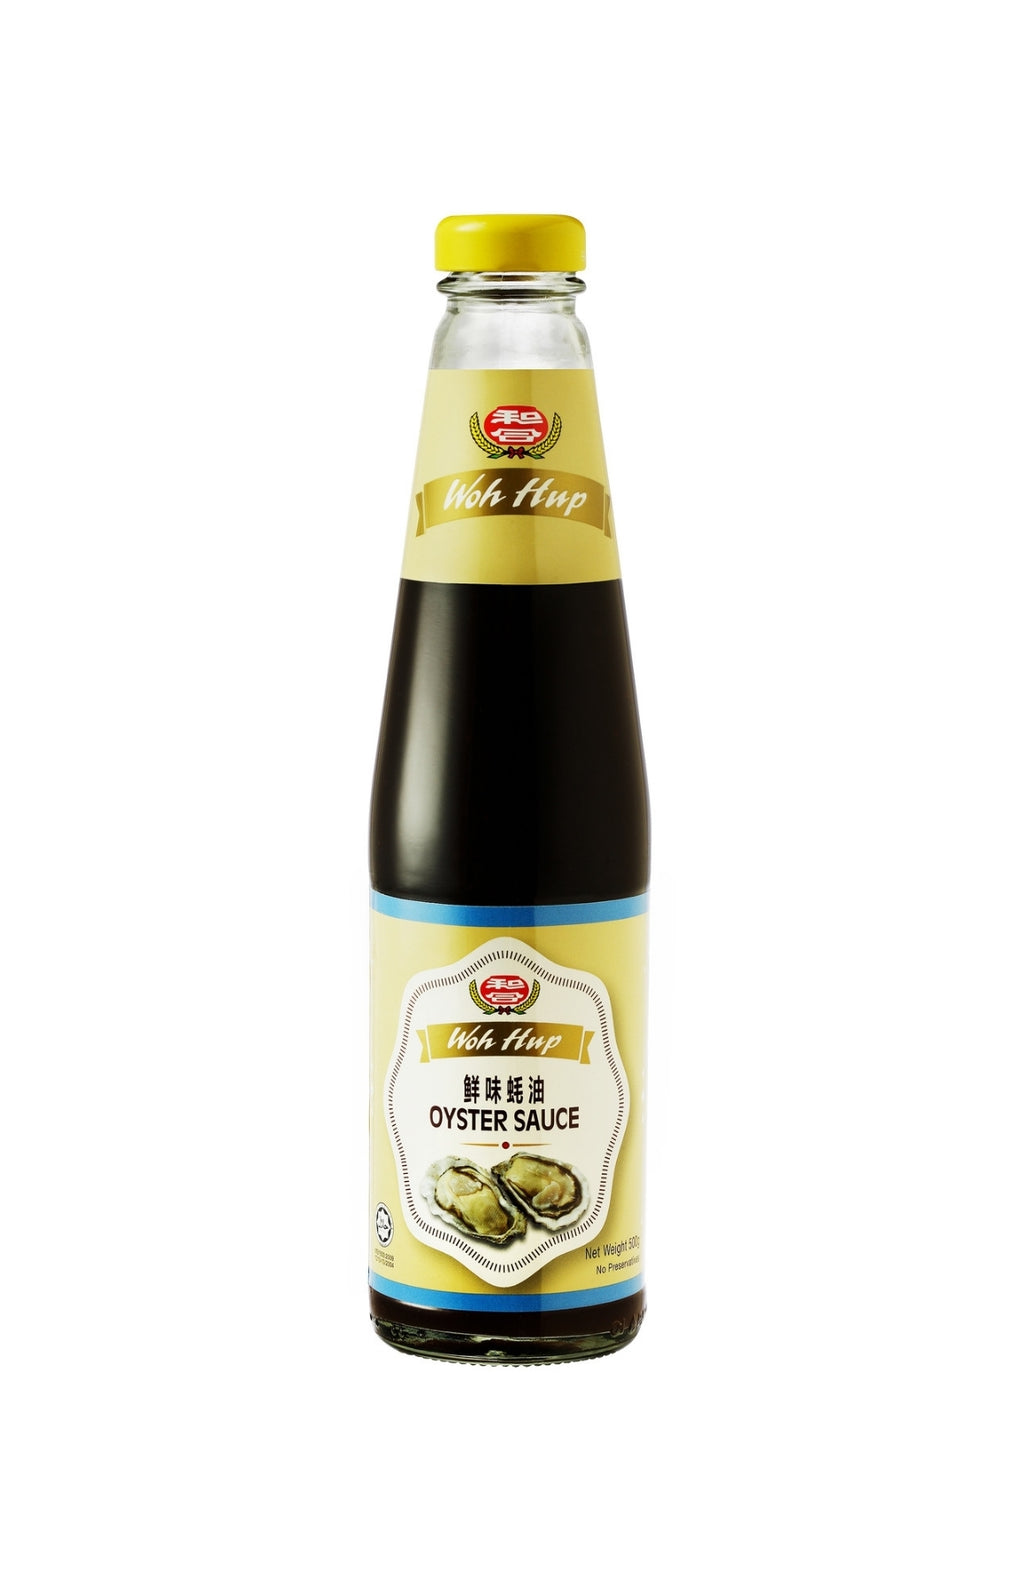 Woh Hup - Oyster Sauce (500g)